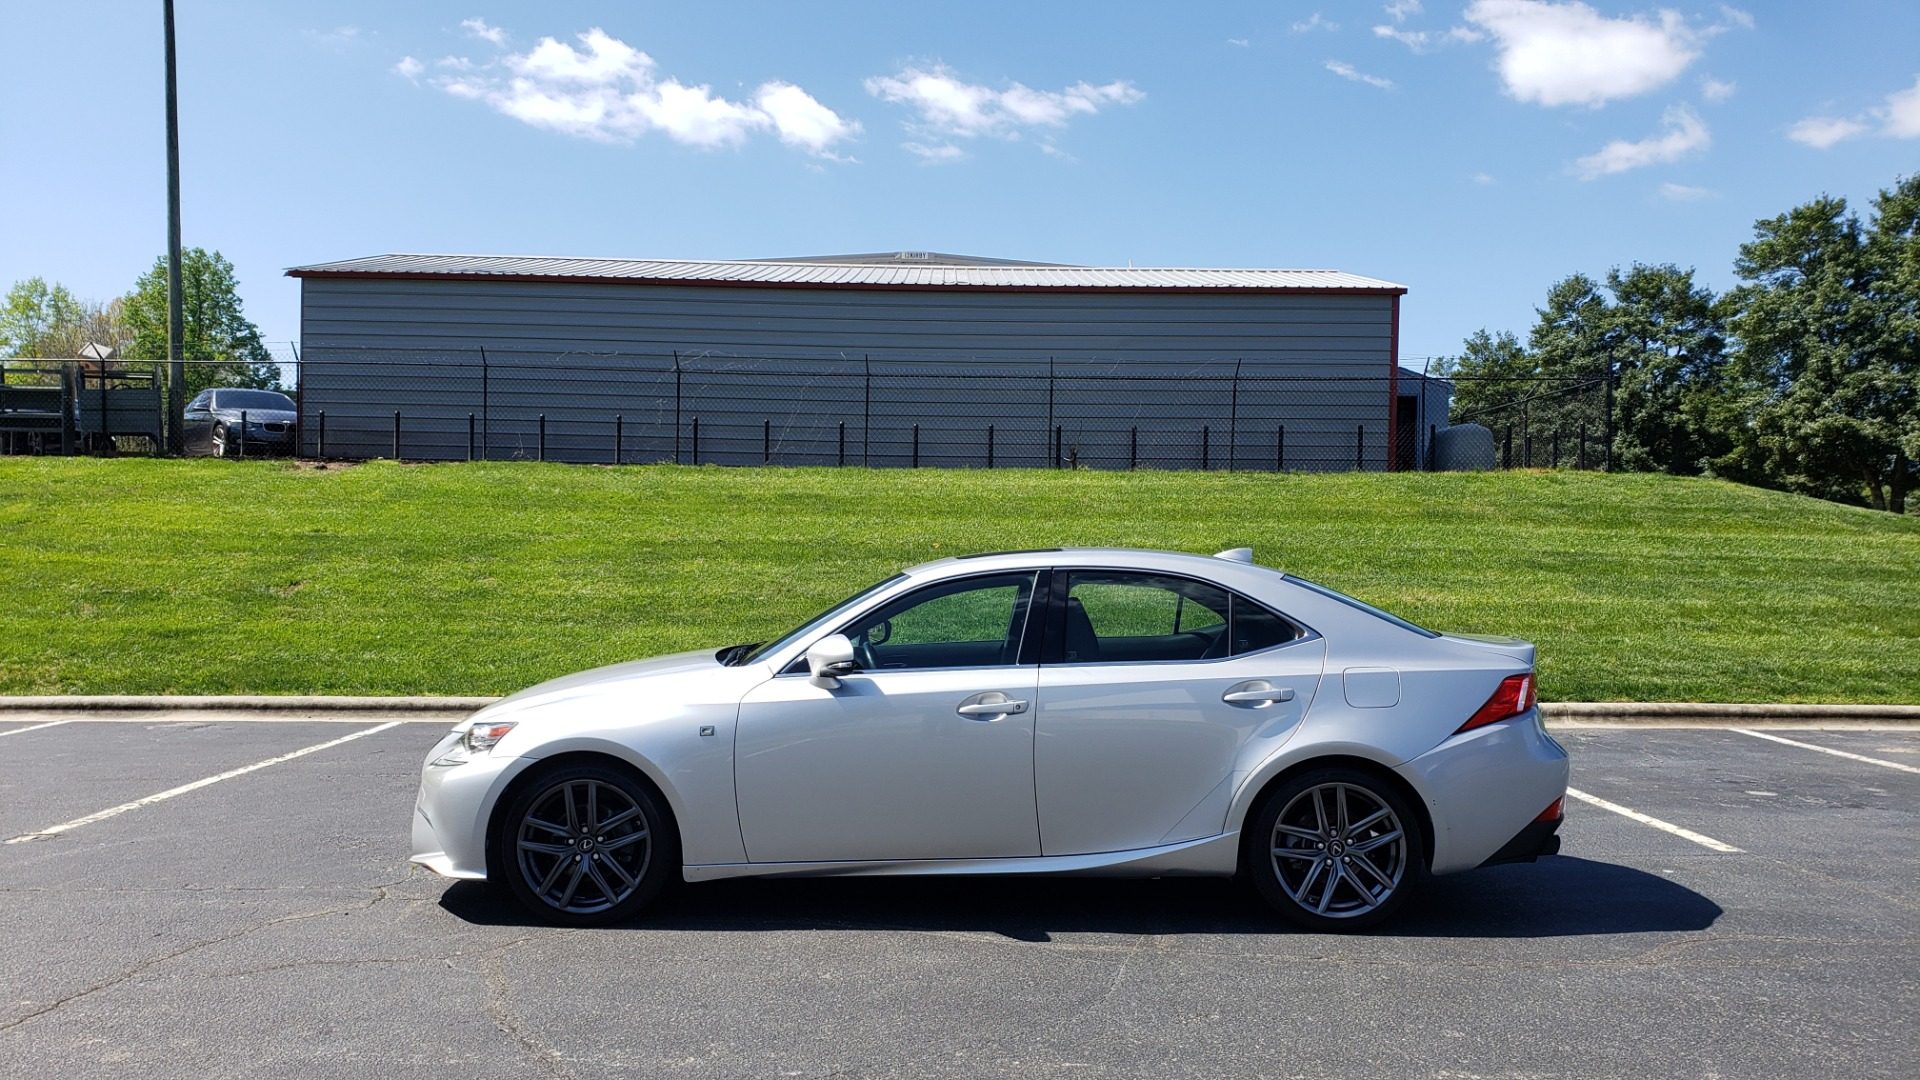 Used 2015 Lexus IS 250 F-SPORT / BSM / SUNROOF / VENT SEATS / REARVIEW for sale Sold at Formula Imports in Charlotte NC 28227 2